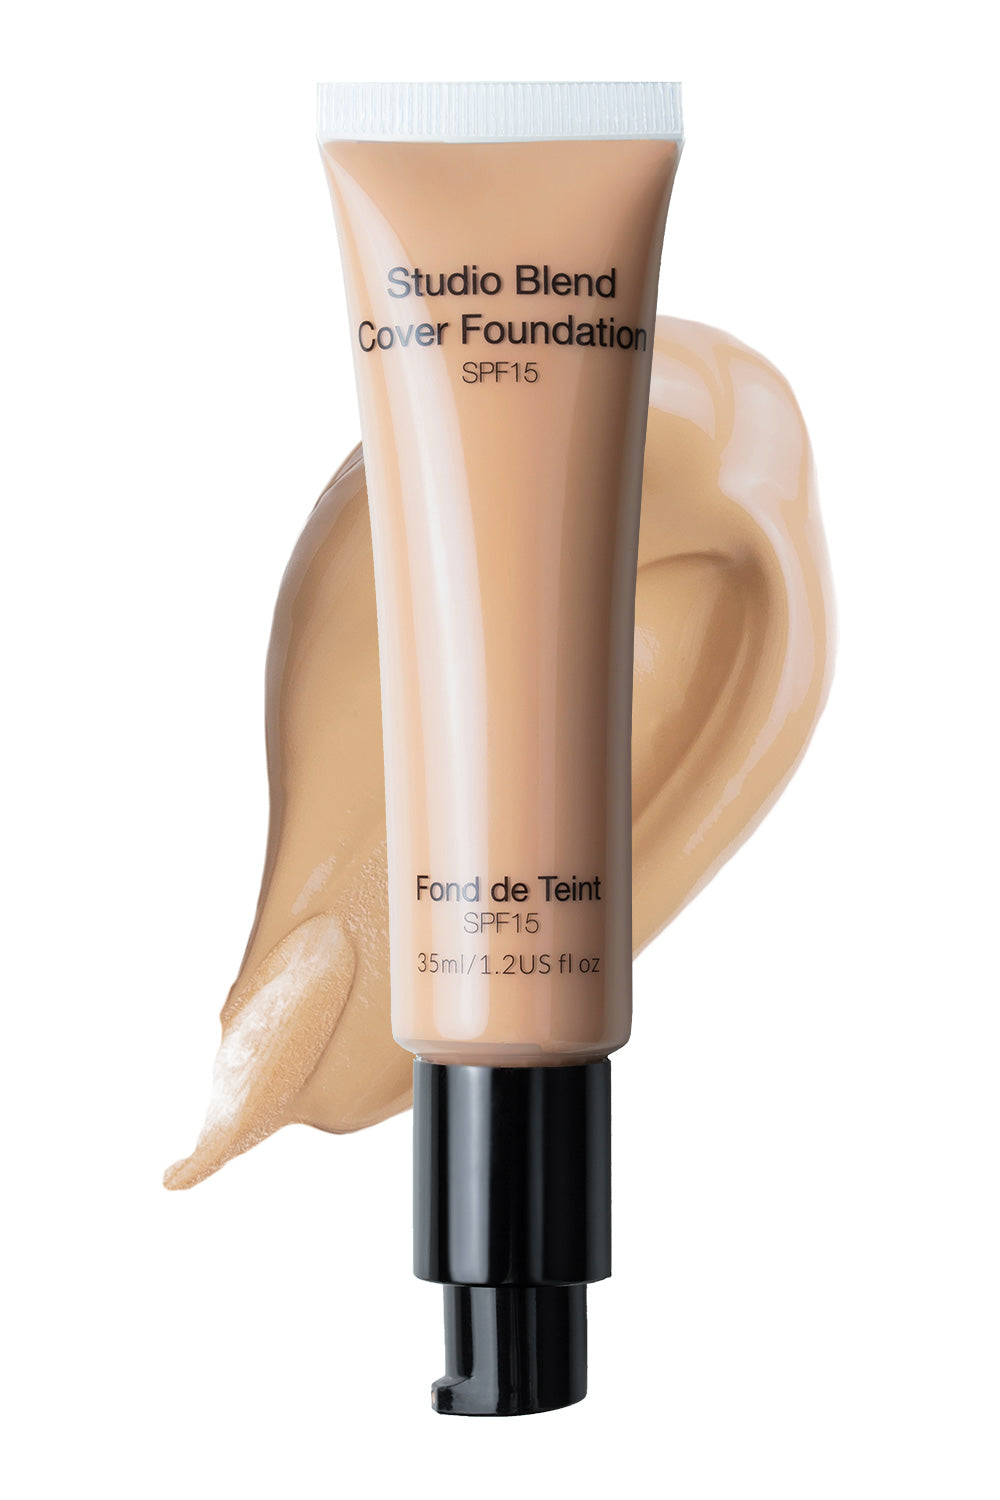 110 - Studio Blend Cover Foundation